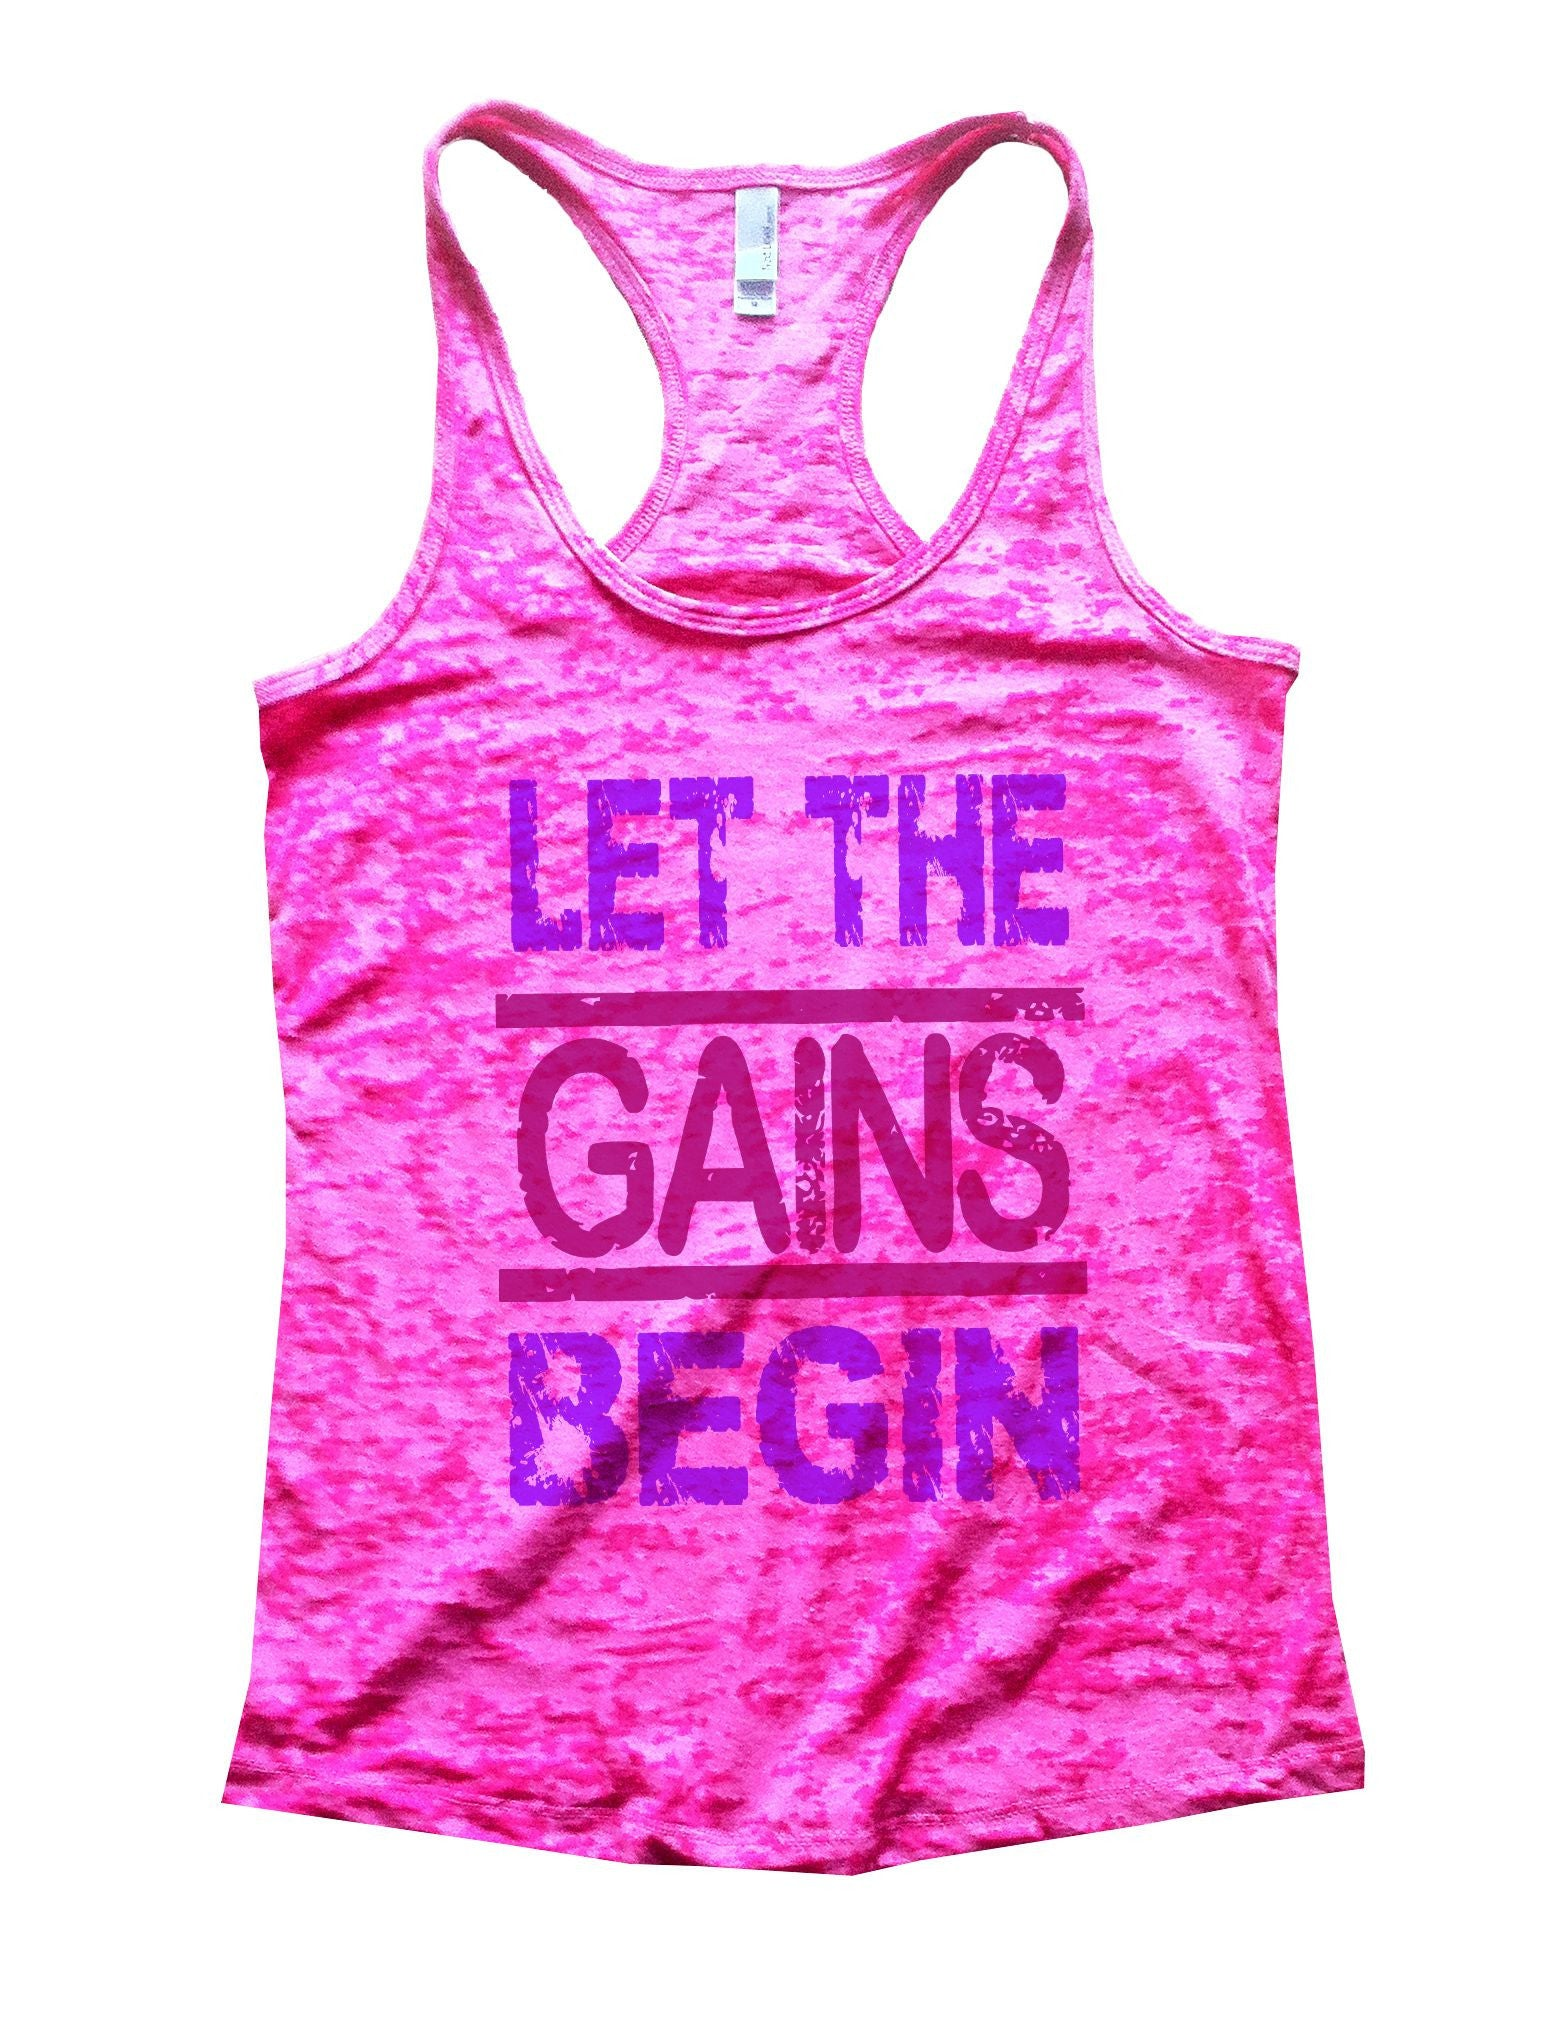 Let The Gains Begin Burnout Tank Top By BurnoutTankTops.com - 540 - Funny Shirts Tank Tops Burnouts and Triblends  - 3